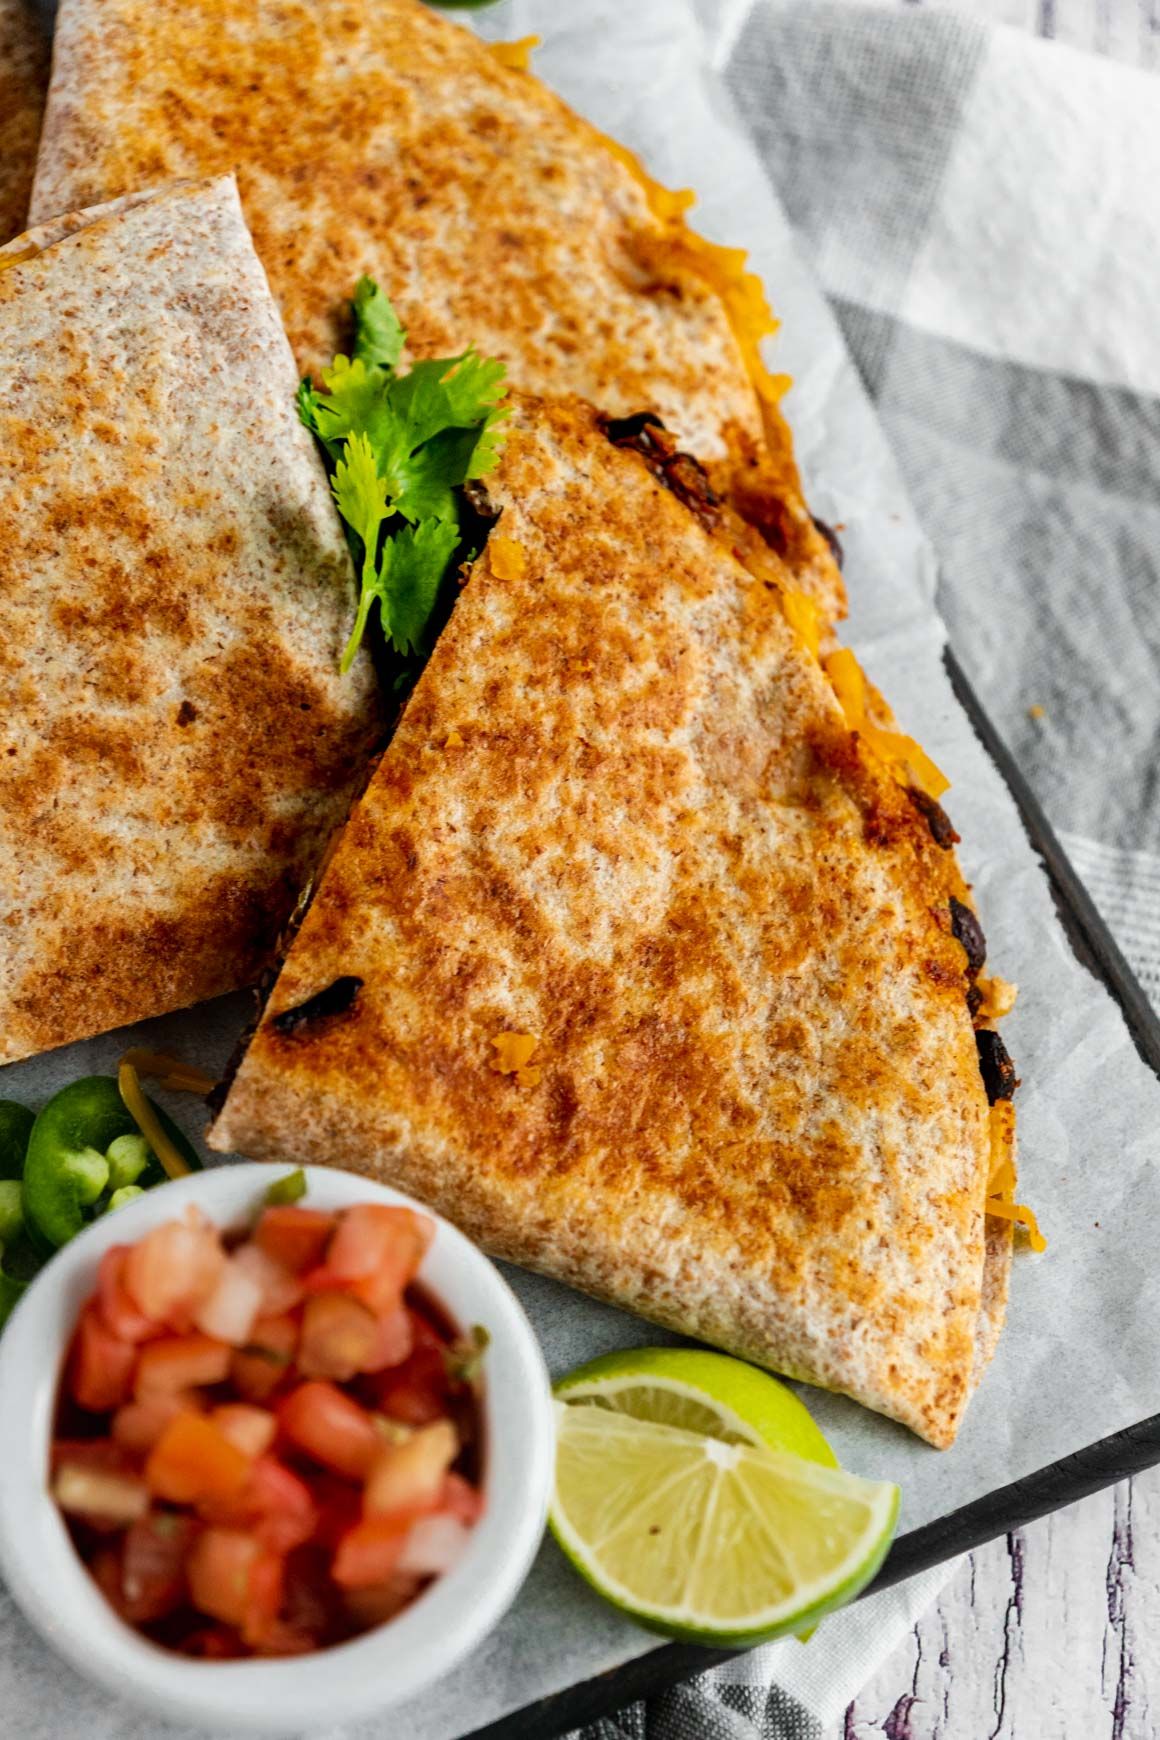 Side-view image of a golden brown black bean quesadilla cute into quarters on a white board on a grey kitchen napkin. To the side there is a small bowl of diced tomato, sliced jalapeno and another bowl of vegan sour cream.